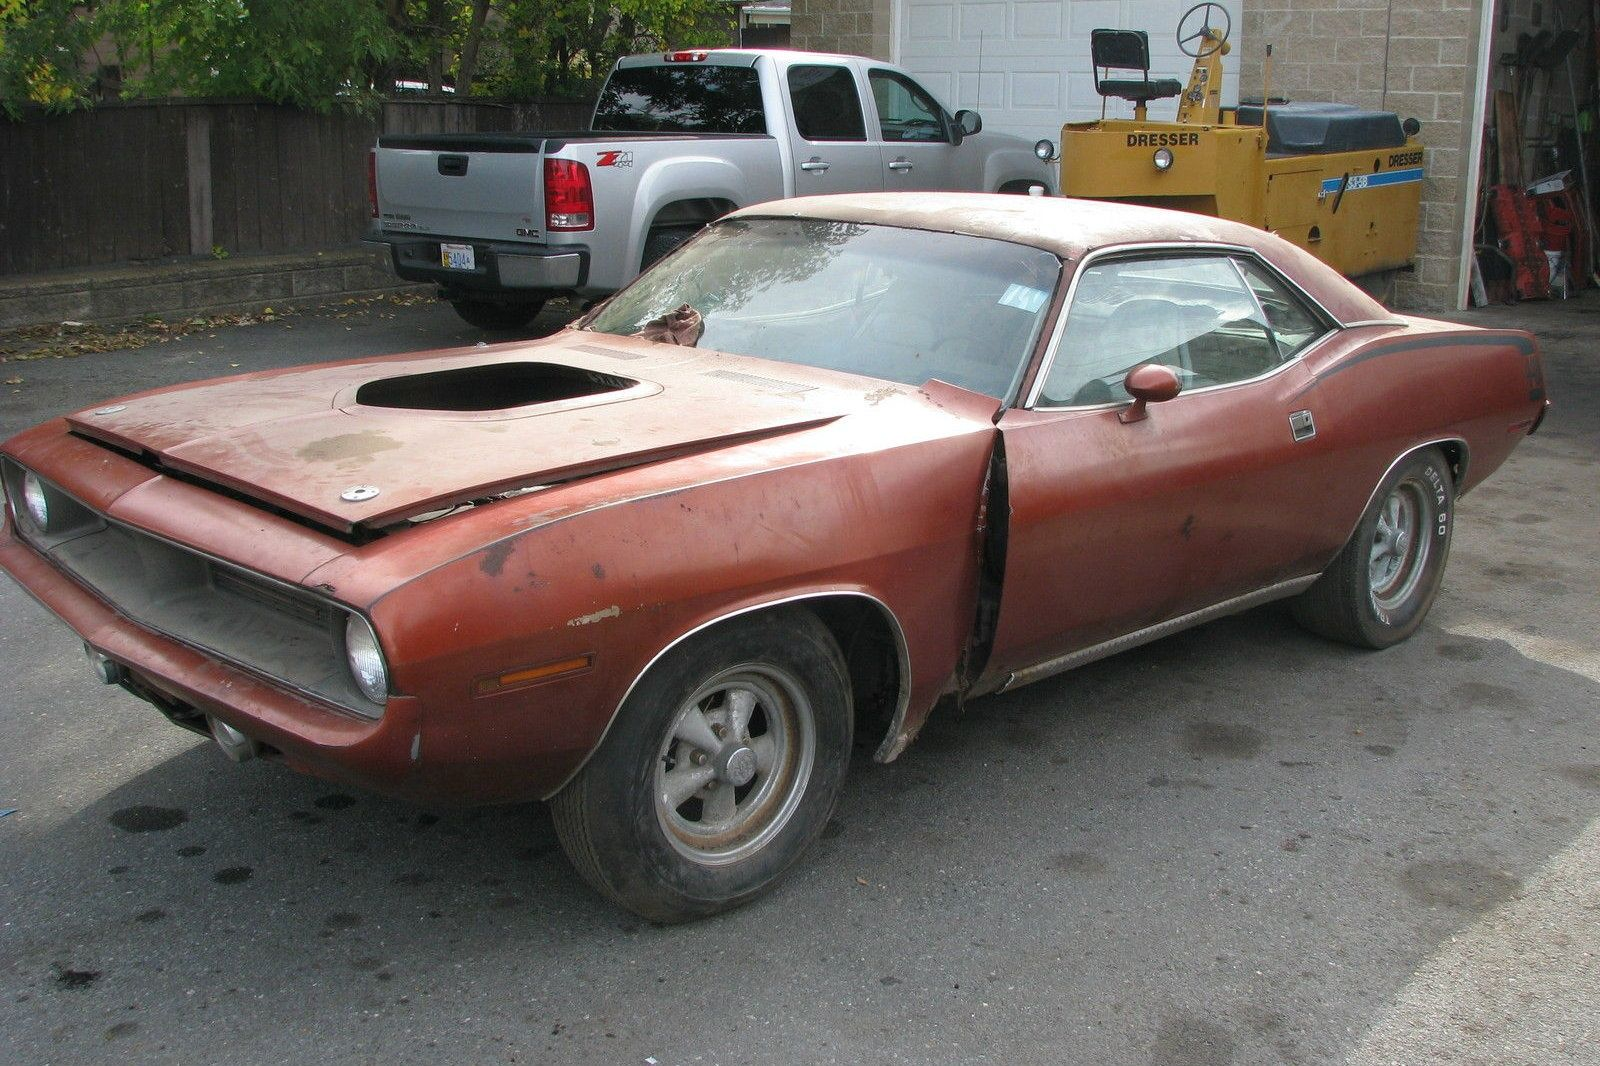 440, 6-Pack & Rust! 1970 Barracuda | Barn finds, Cars and Mopar